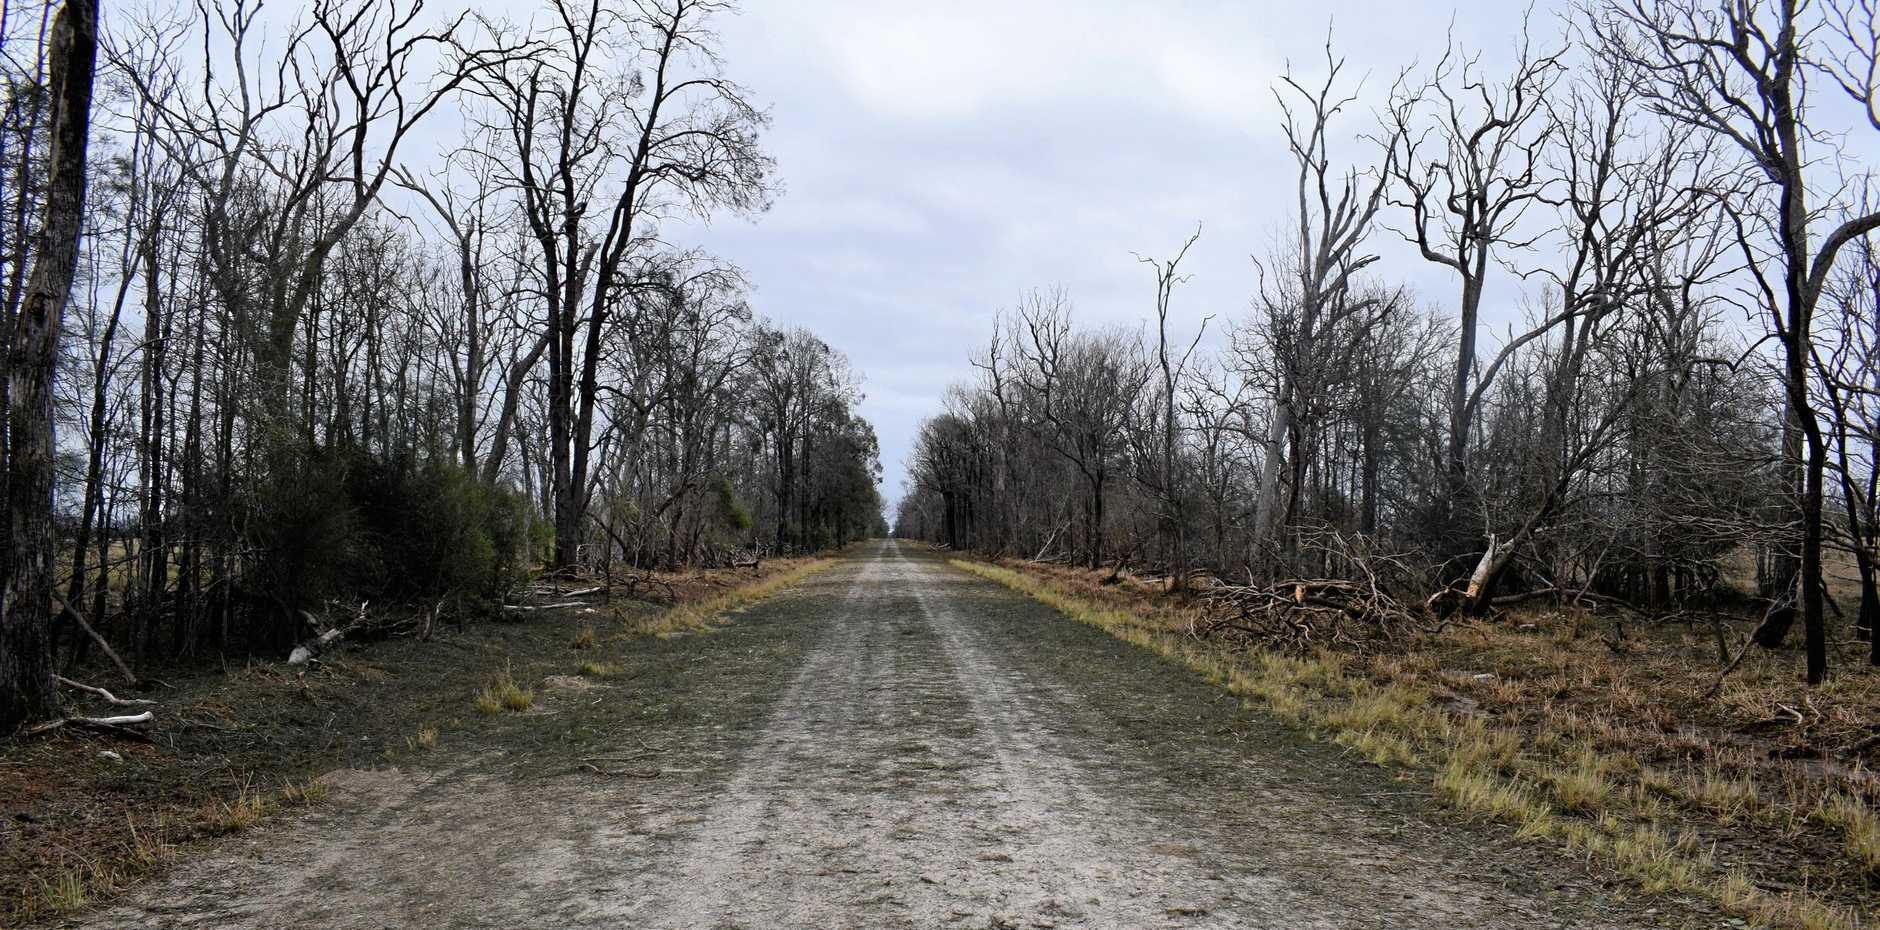 GONE: Hail stripped the leaves off trees on this road near watermelon farmer Tom Brett's property.